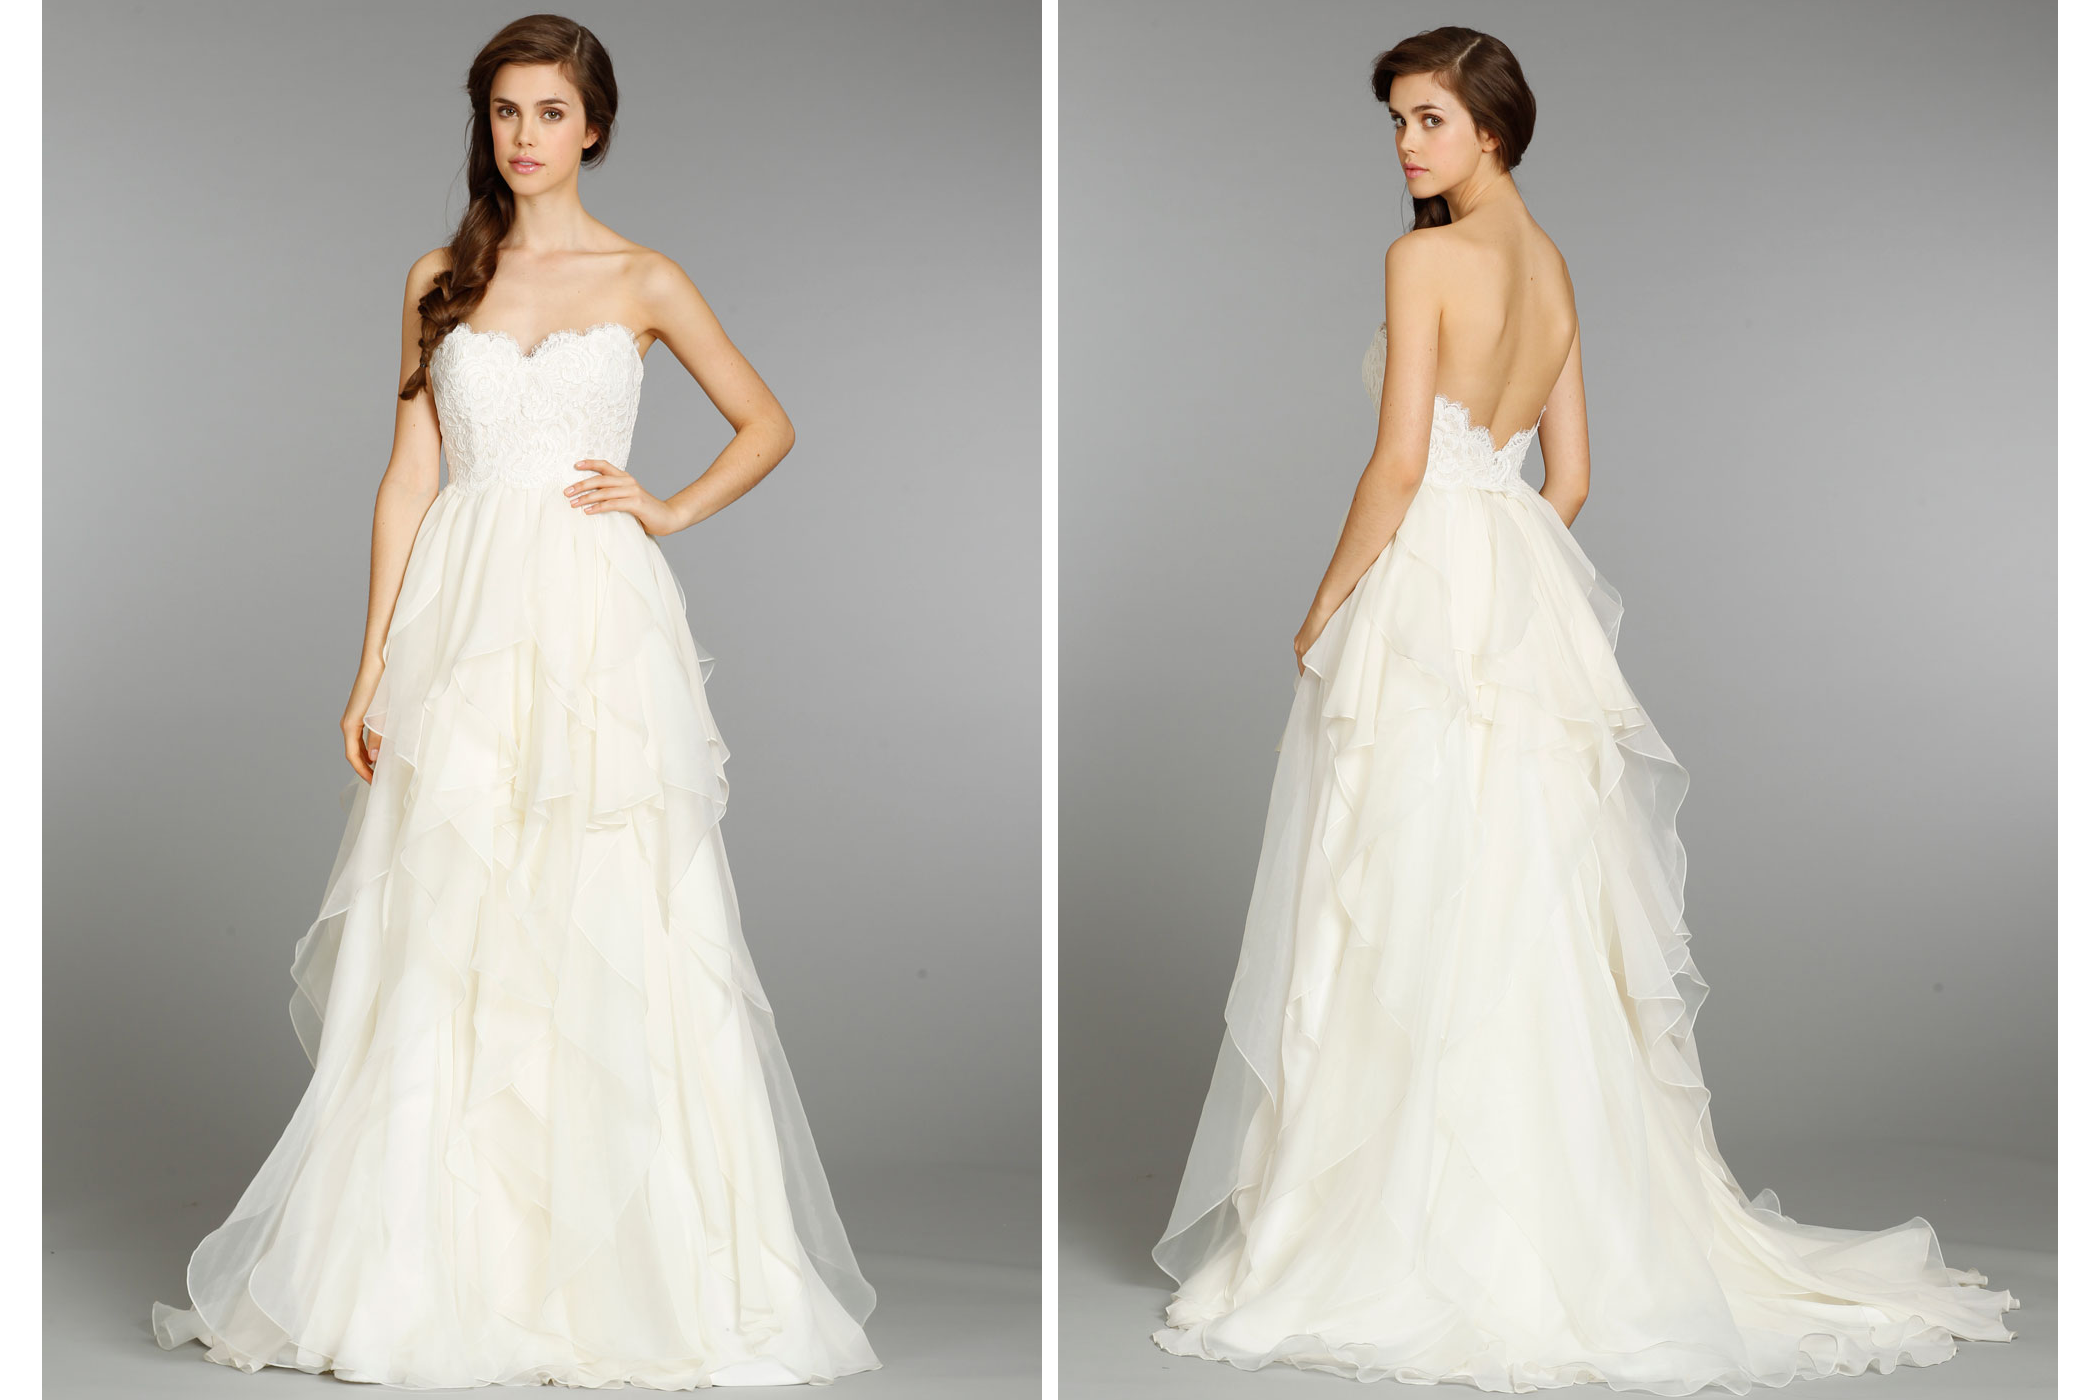 Hayley paige wedding dress fall 2013 bridal 6353 2 for Hayley paige wedding dress